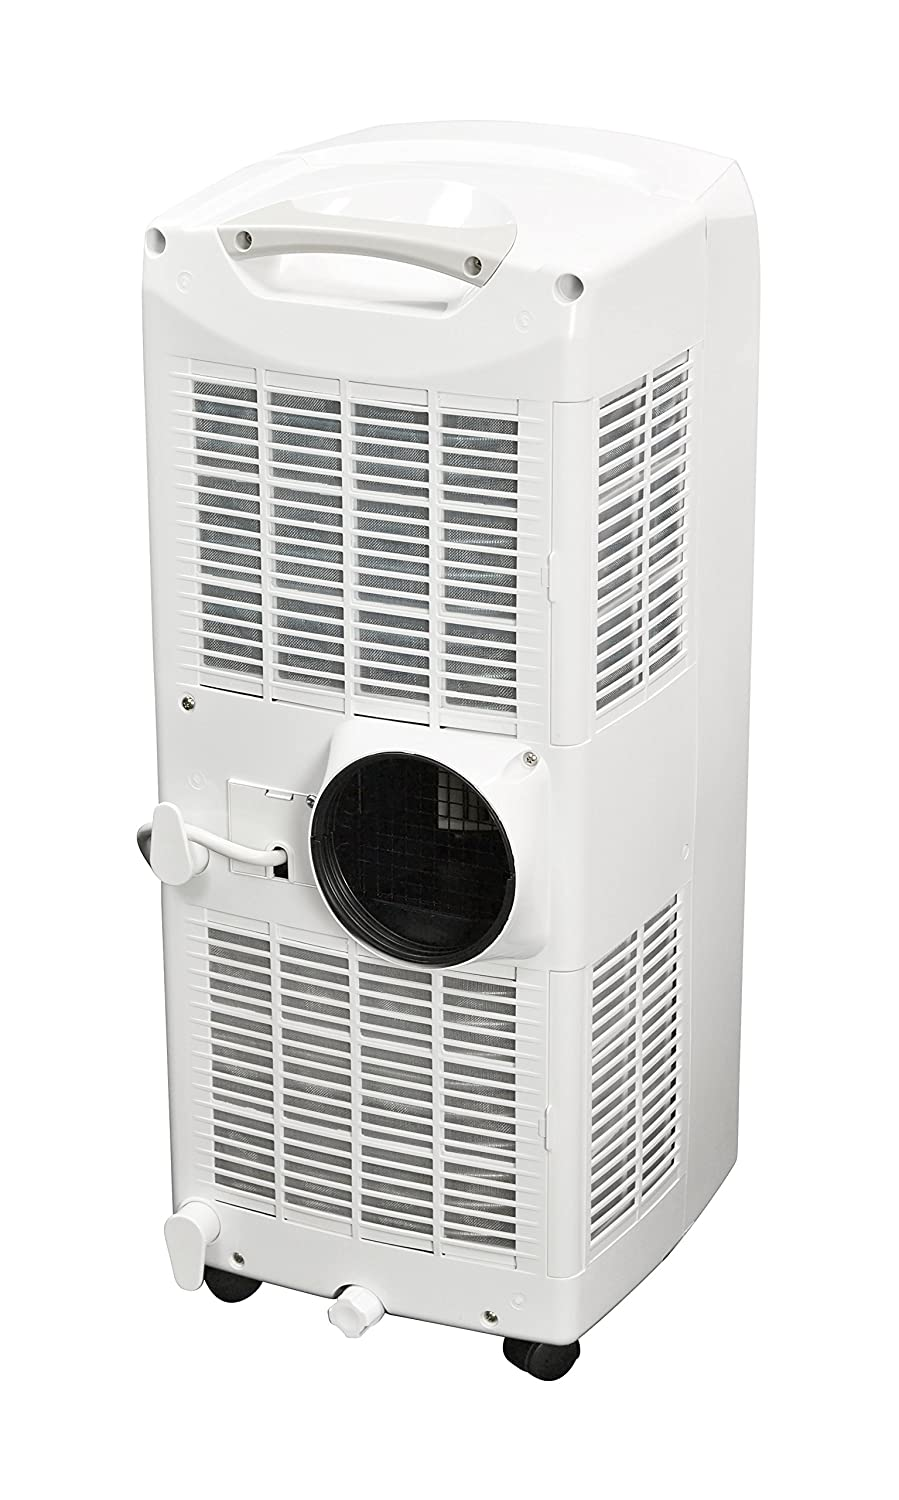 Newair Ac 10100h Ultra Compact 10000 Btu Portable Air Home A C Compressor Wiring Post Conditioner And Heater Kitchen